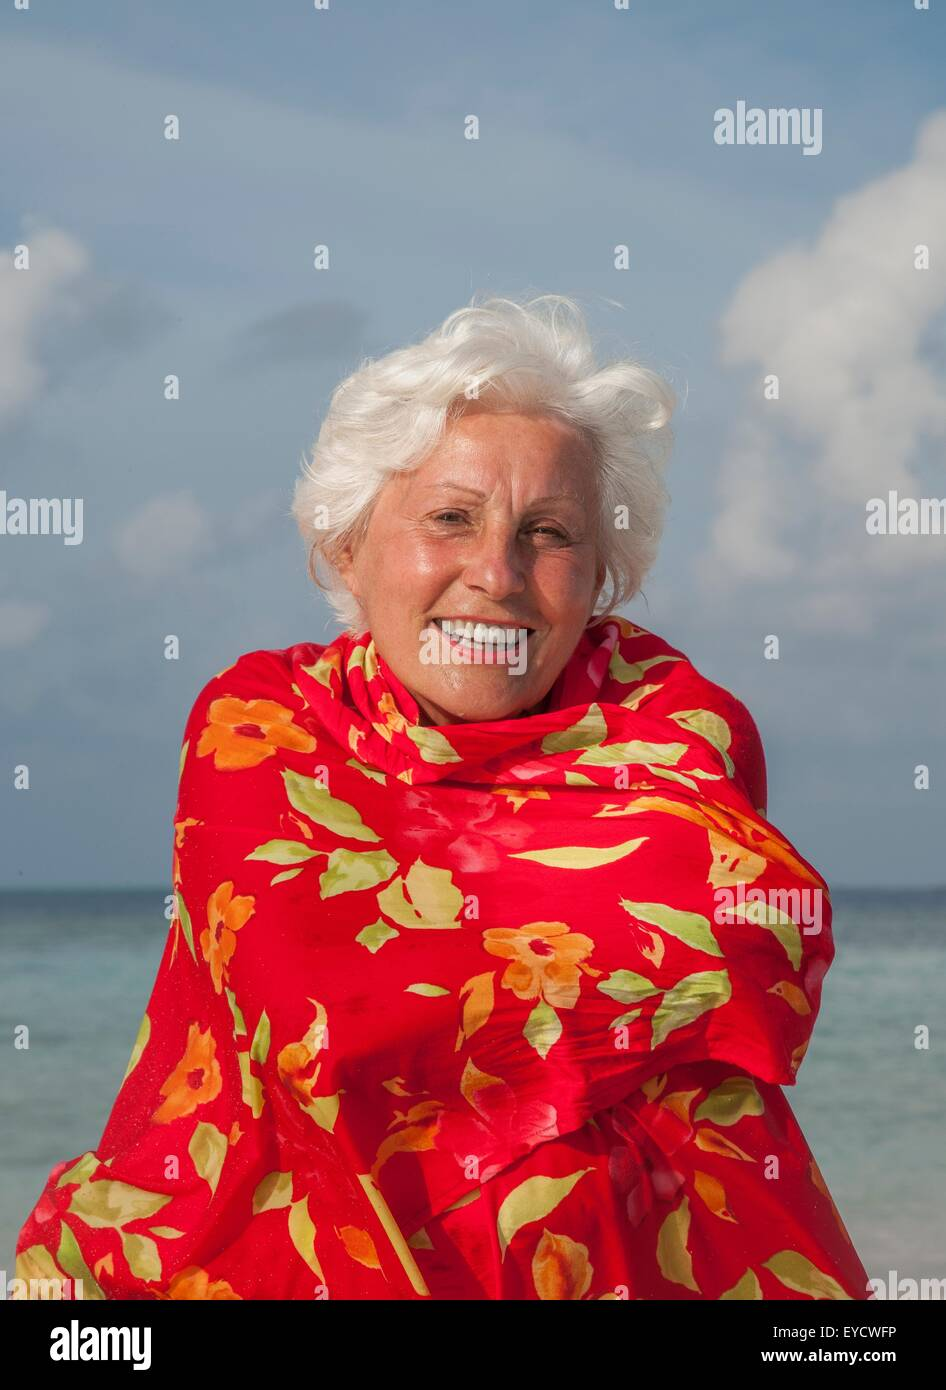 Senior woman wrapped in shawl, portrait - Stock Image